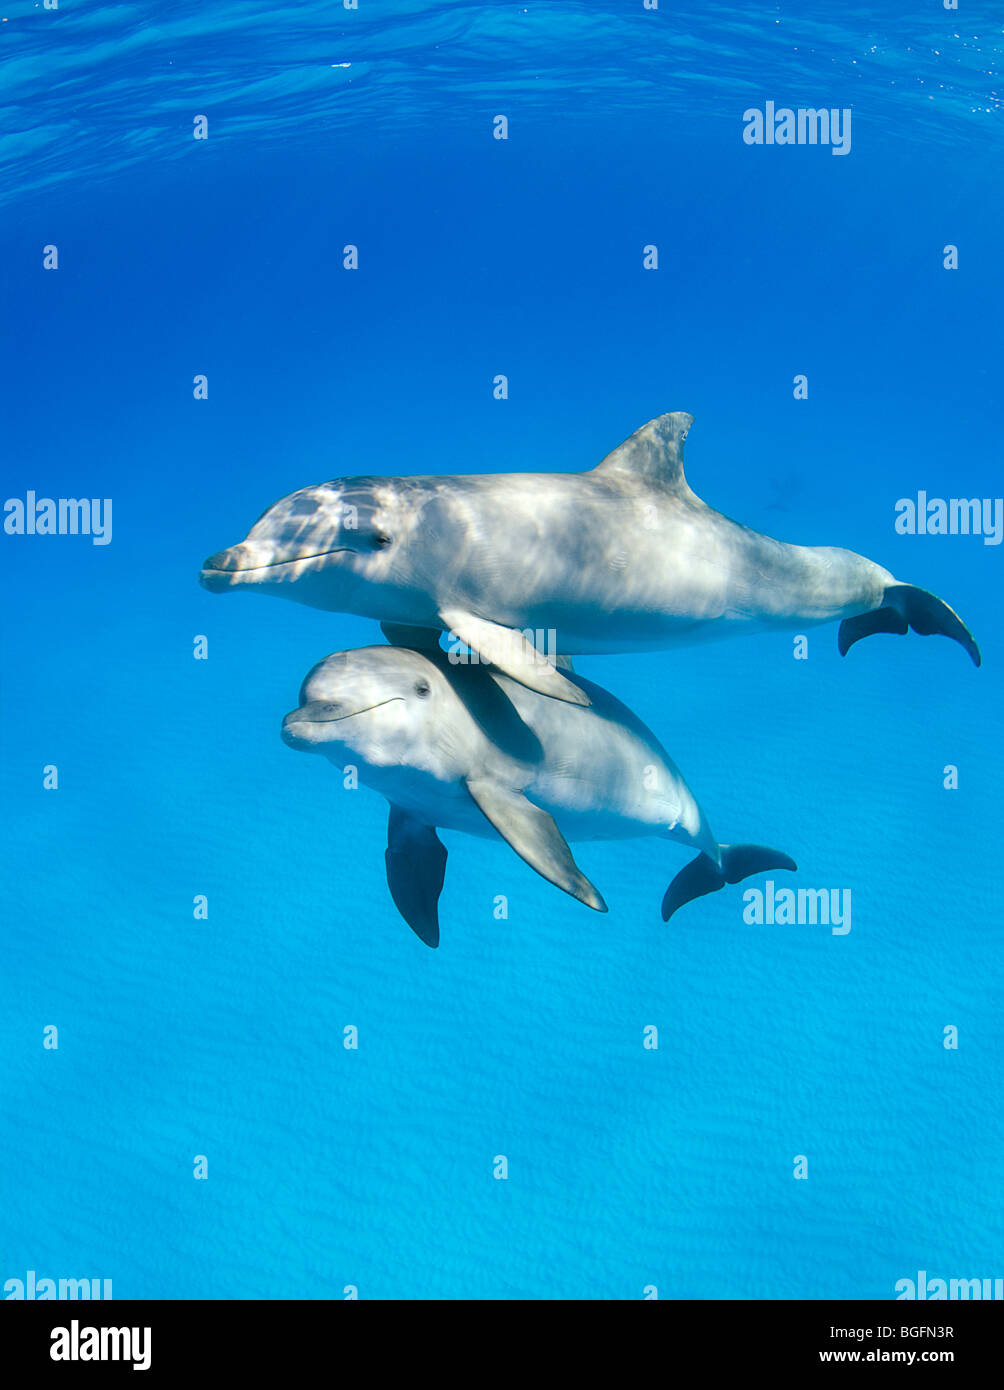 Three Bottlenose Dolphin (Tursiops truncatus) underwater in the Bahamas with another pod in the background. - Stock Image